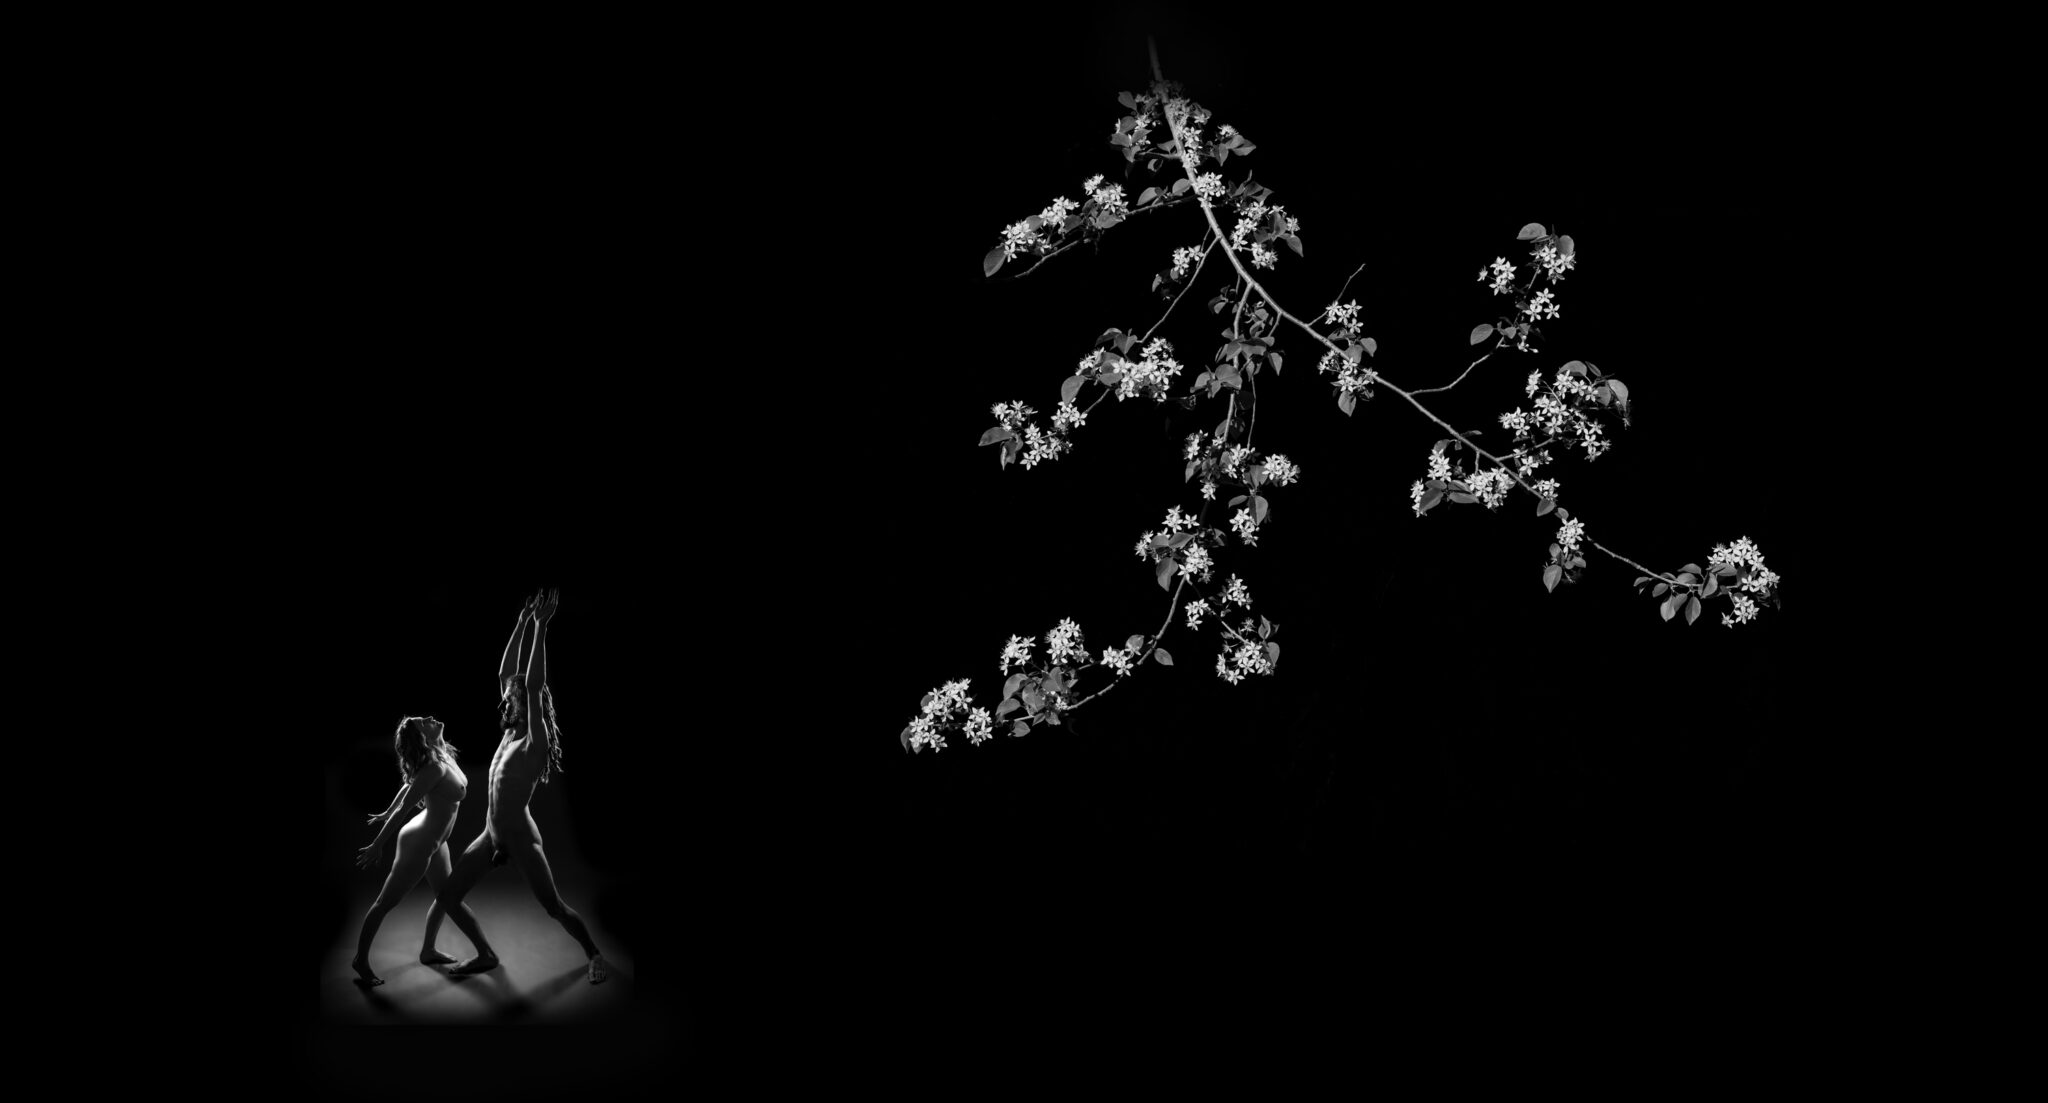 Black and white photograph of a man and woman dancing under white flowers on a branch of tree that mirrors the gesture of the human forms.